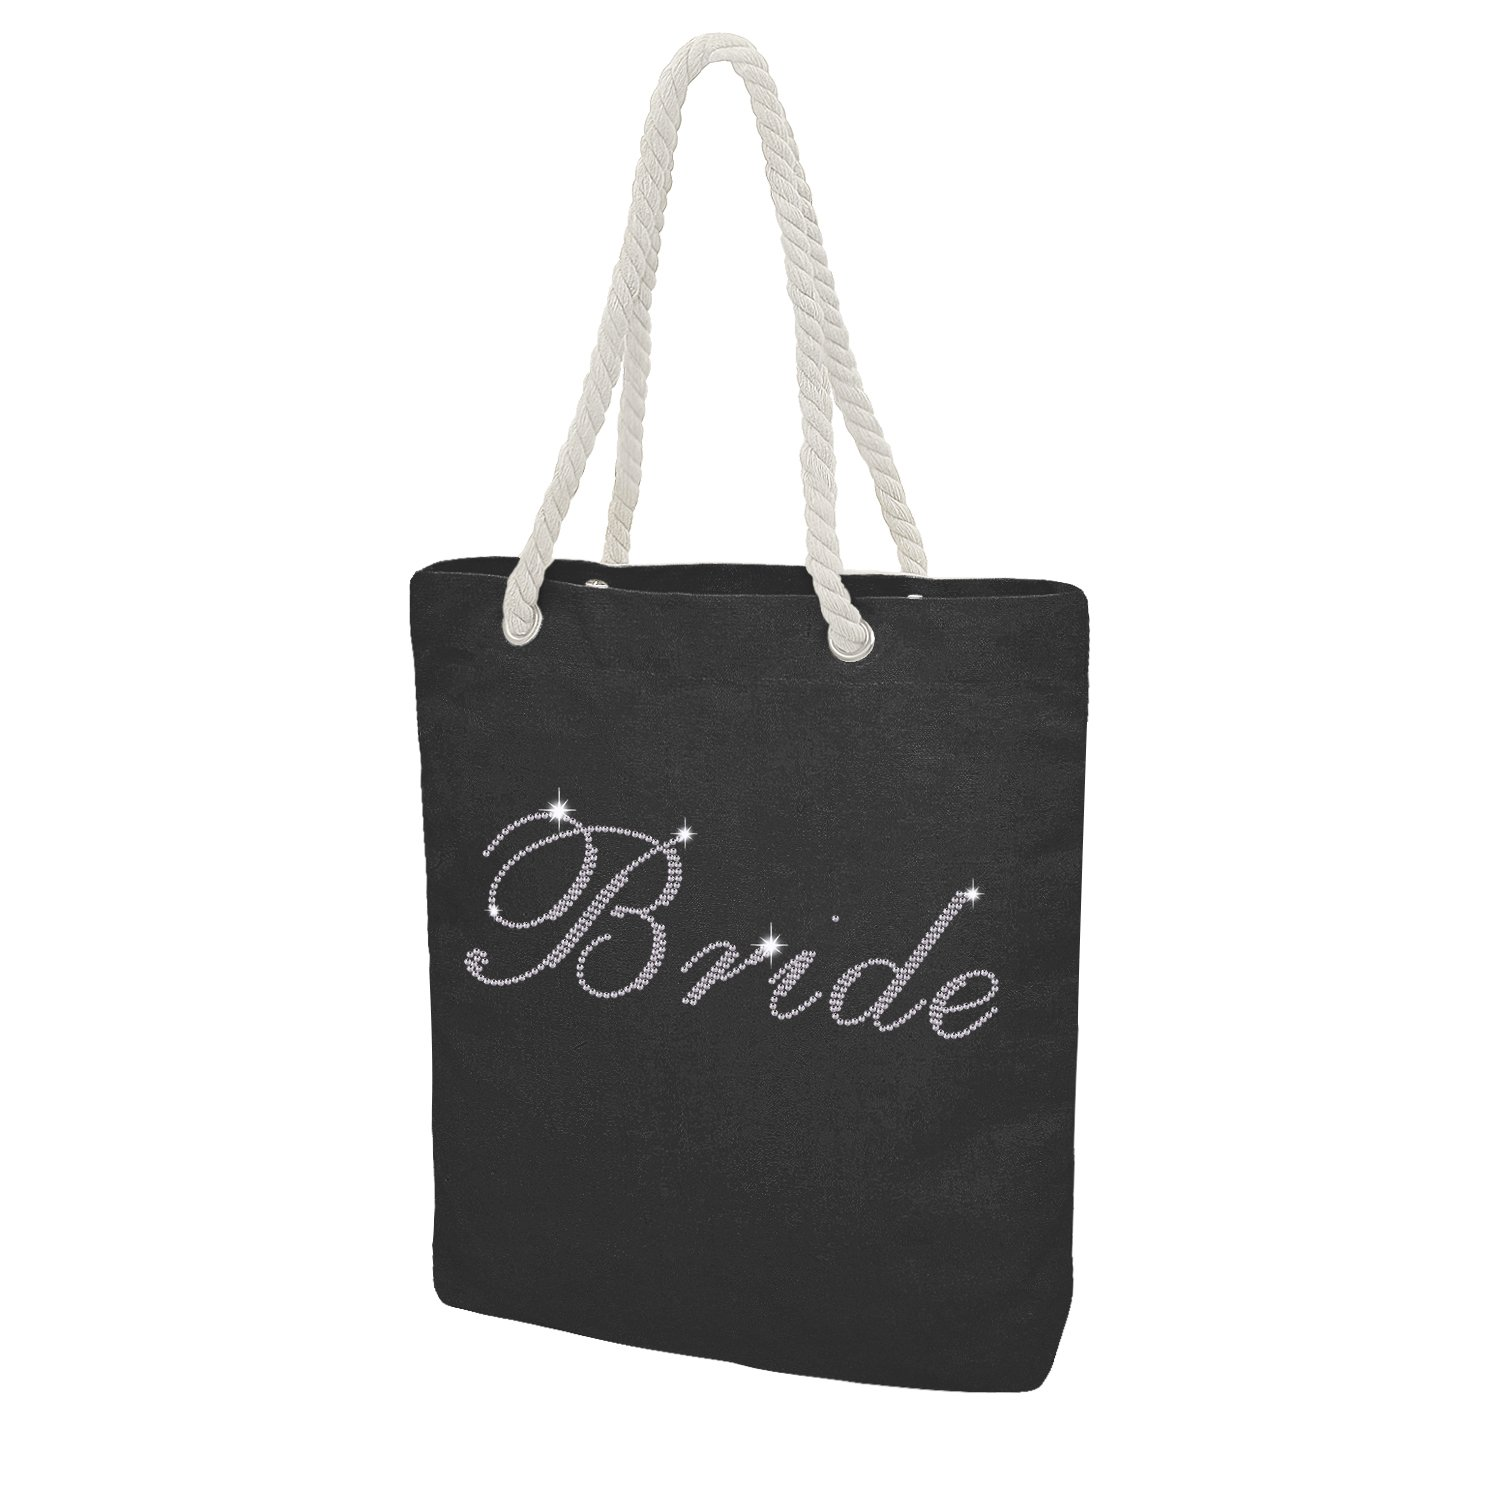 Elehere Custom Tote bag Crystal Cotton Bags Rhinestone Bridal Shower Bachelorette Party Gift (Black - Bride)